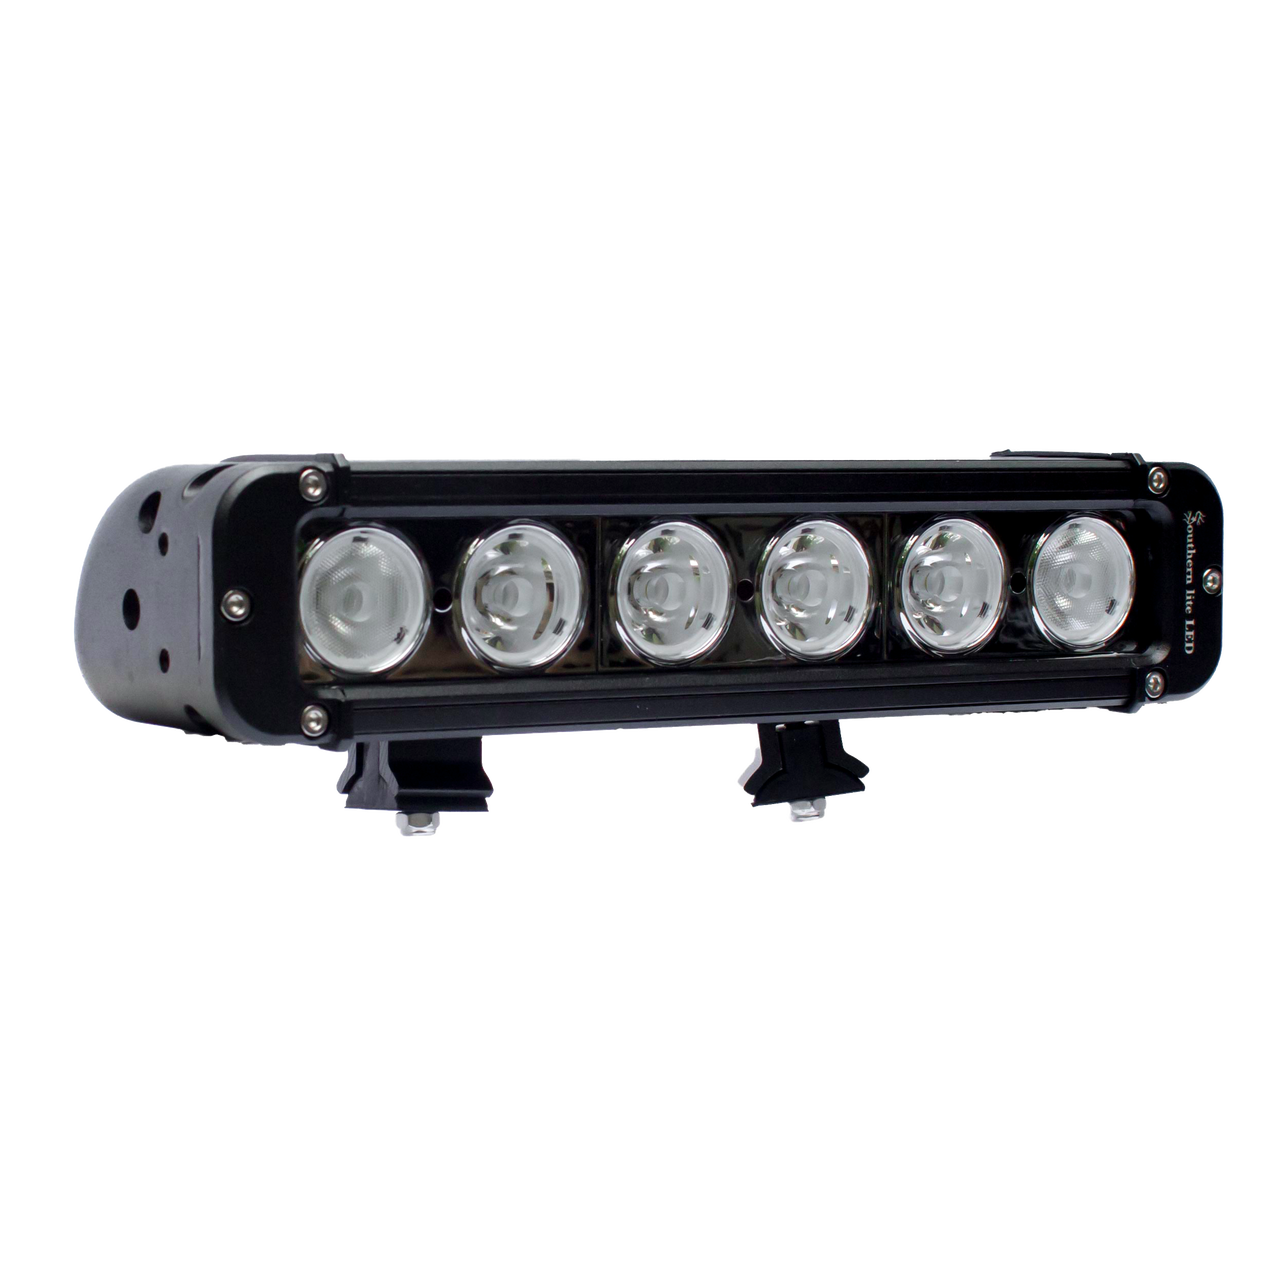 """Southern lite LED 11"""" (60 Watt) Single Row LED Light Bar, with slide track mounting and wire harness."""